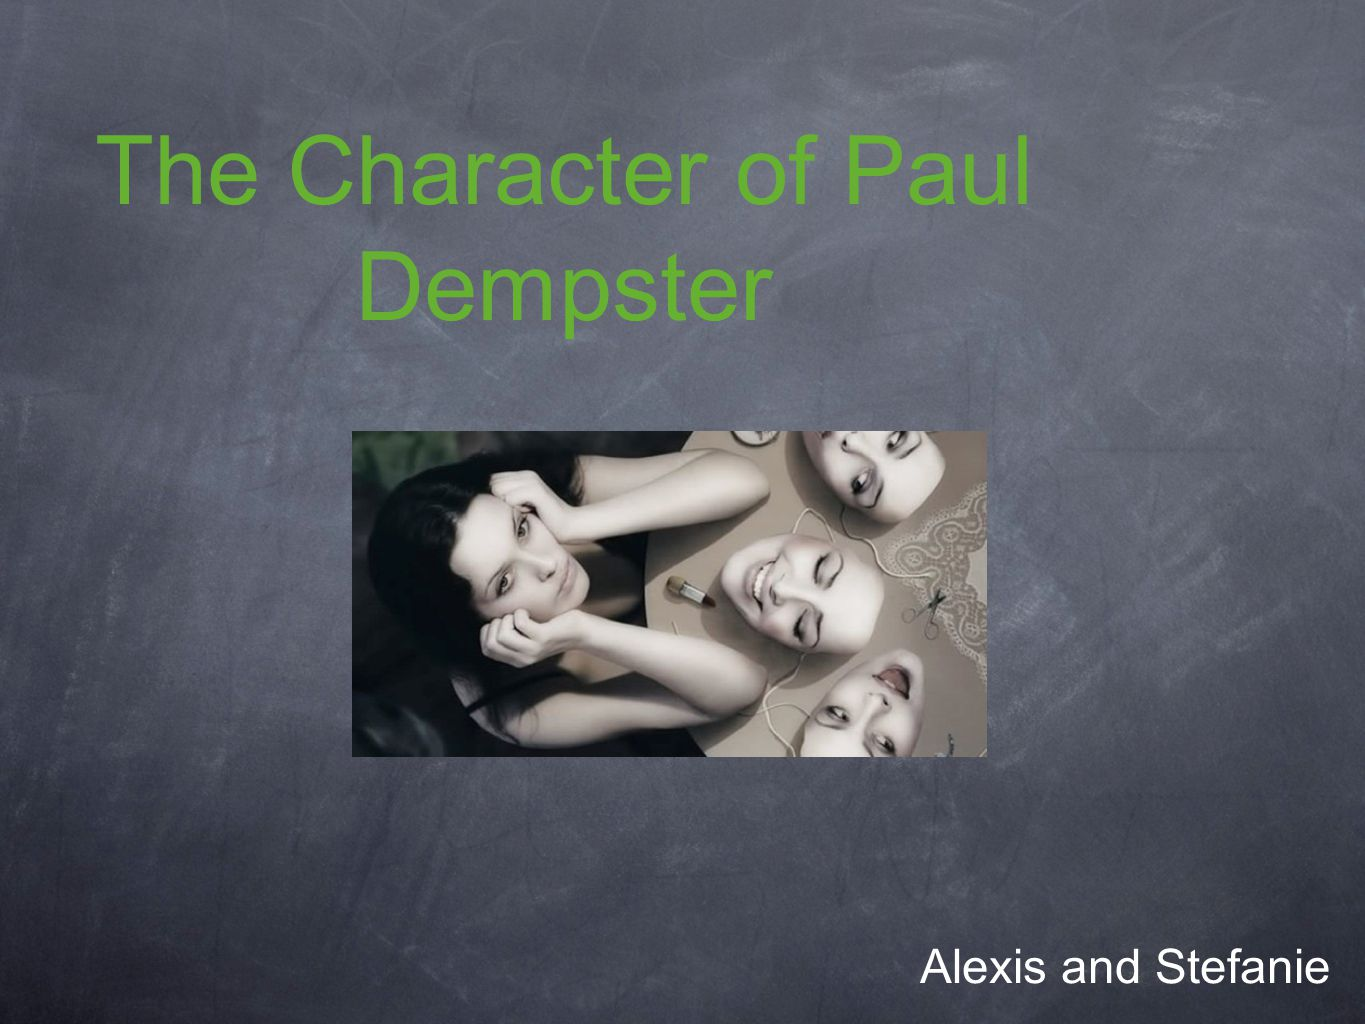 The Character of Paul Dempster